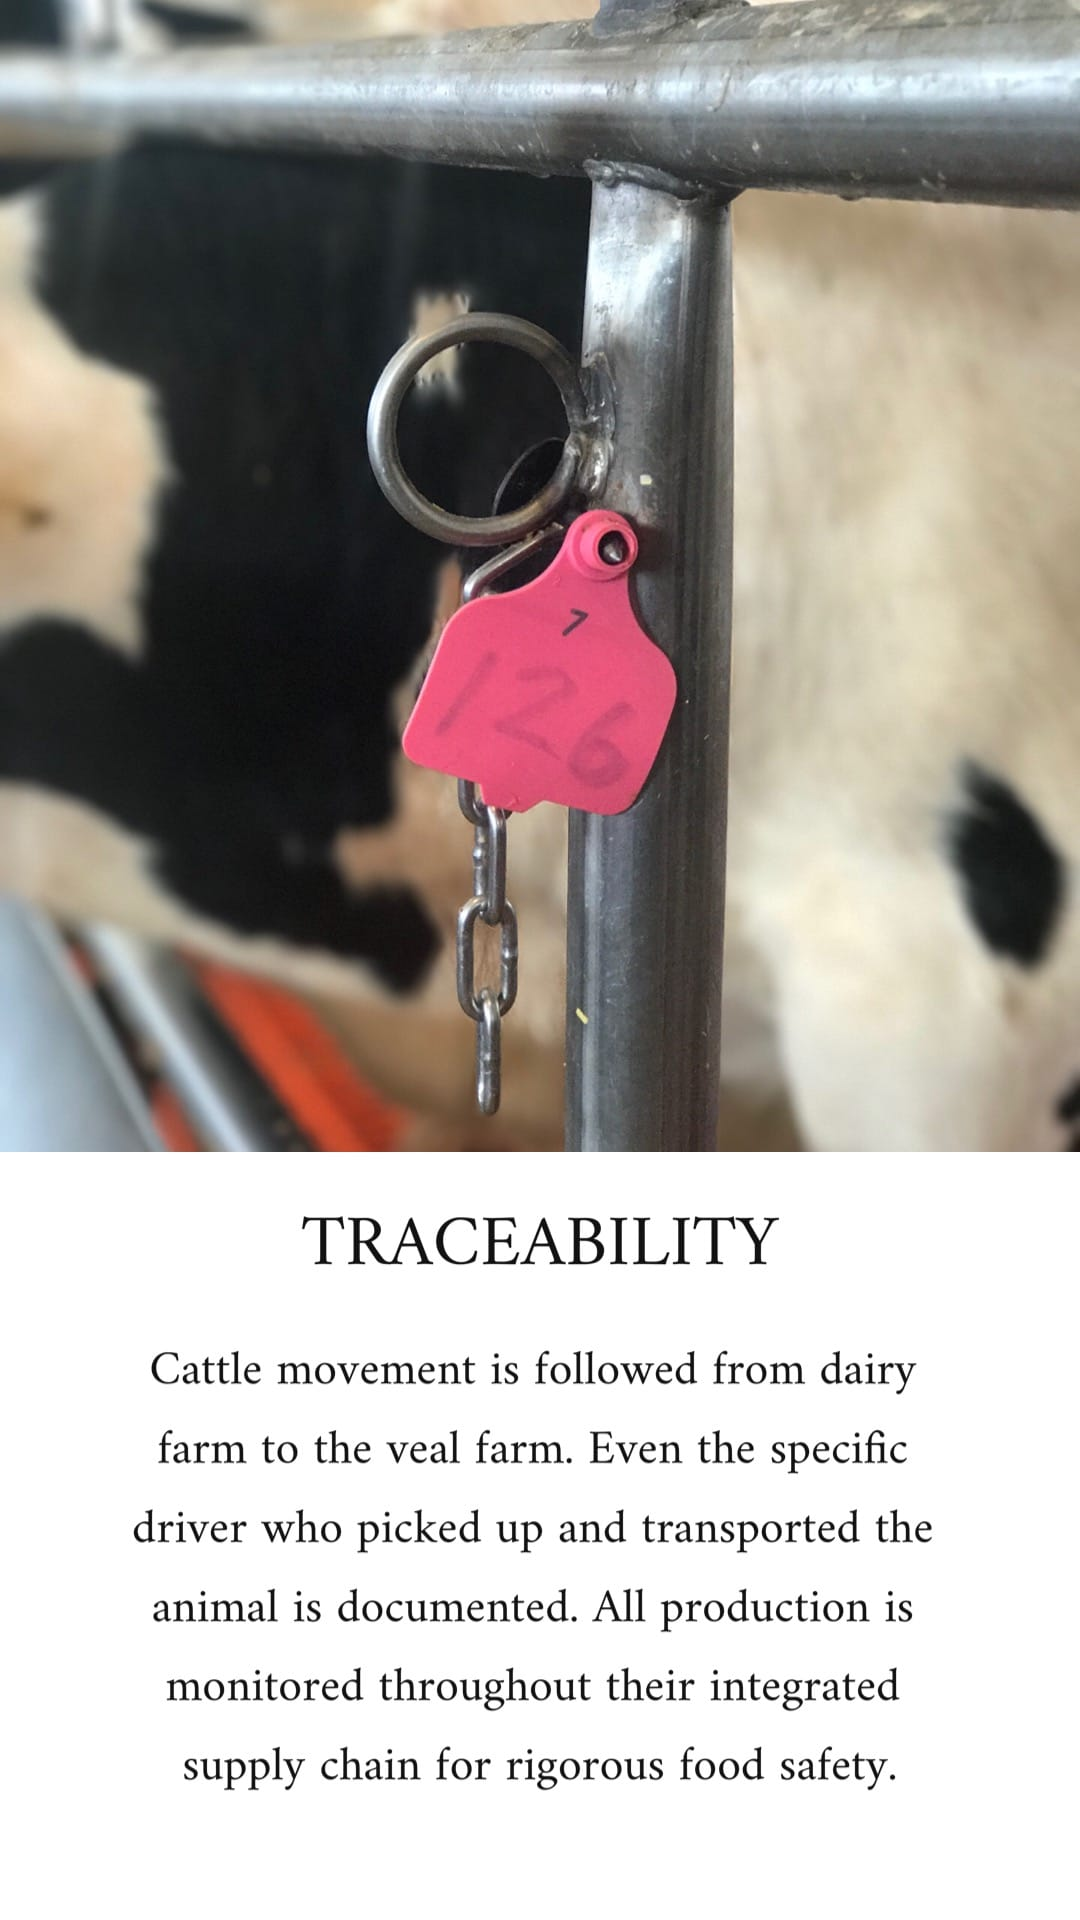 Close-up image of a pink farm tag tracing meat movement from farm to store.